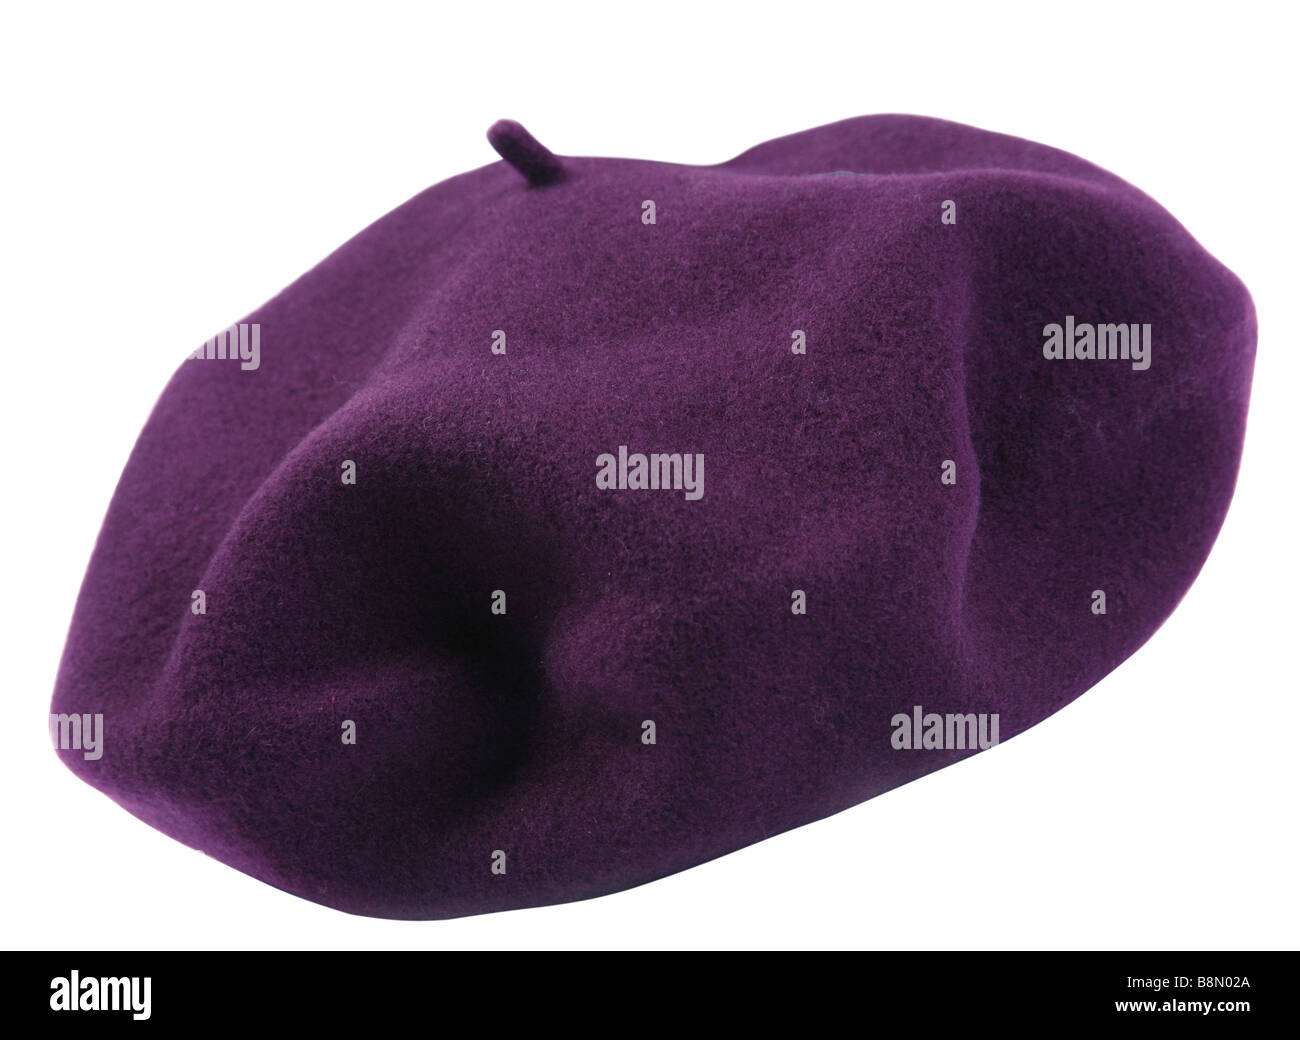 947009ee093 Accessory purple beret closeup on white background - Stock Image